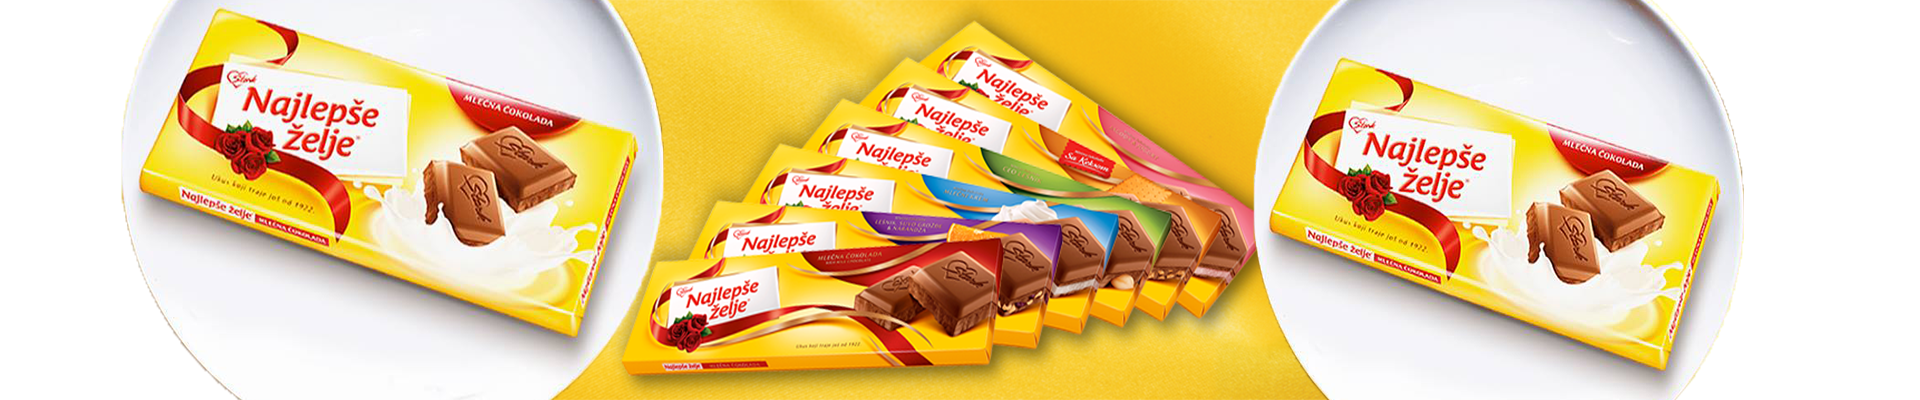 "Back in stock ""Najlepše želje"" chocolates!"